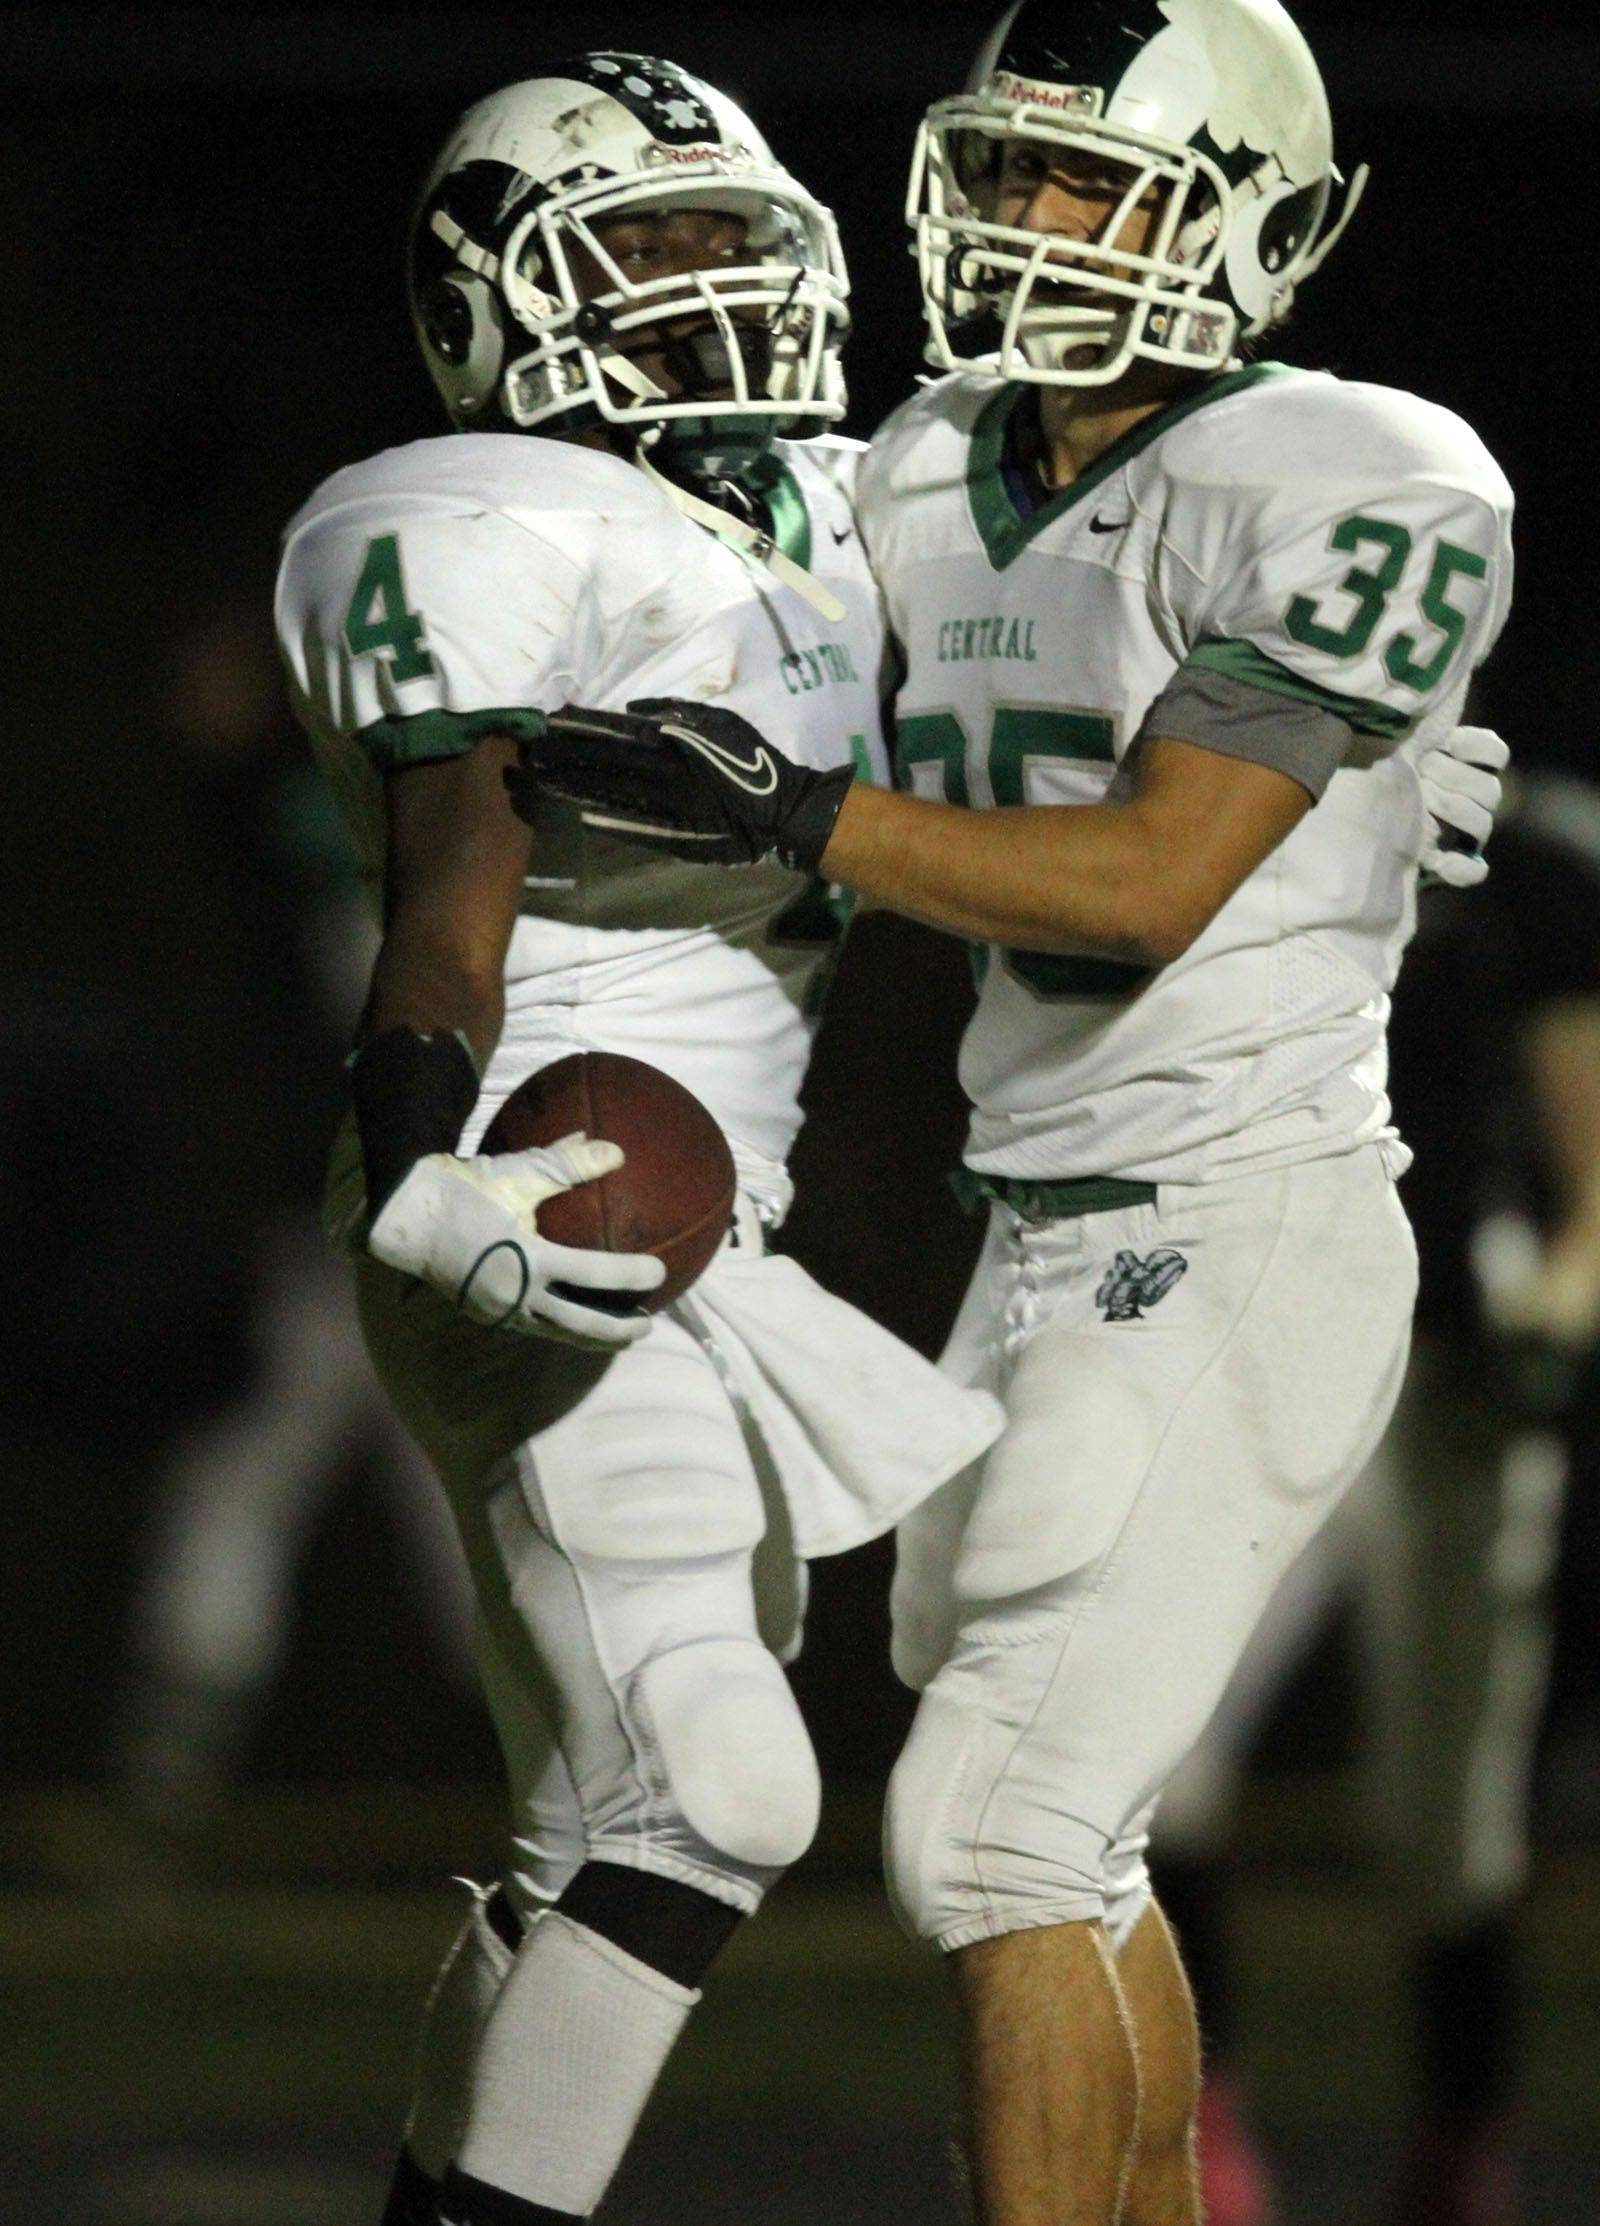 WEEK 8- Grayslake Central's Jahard Nelson gets a hand from teammate Vinnie Culhane, after running for a touchdown.